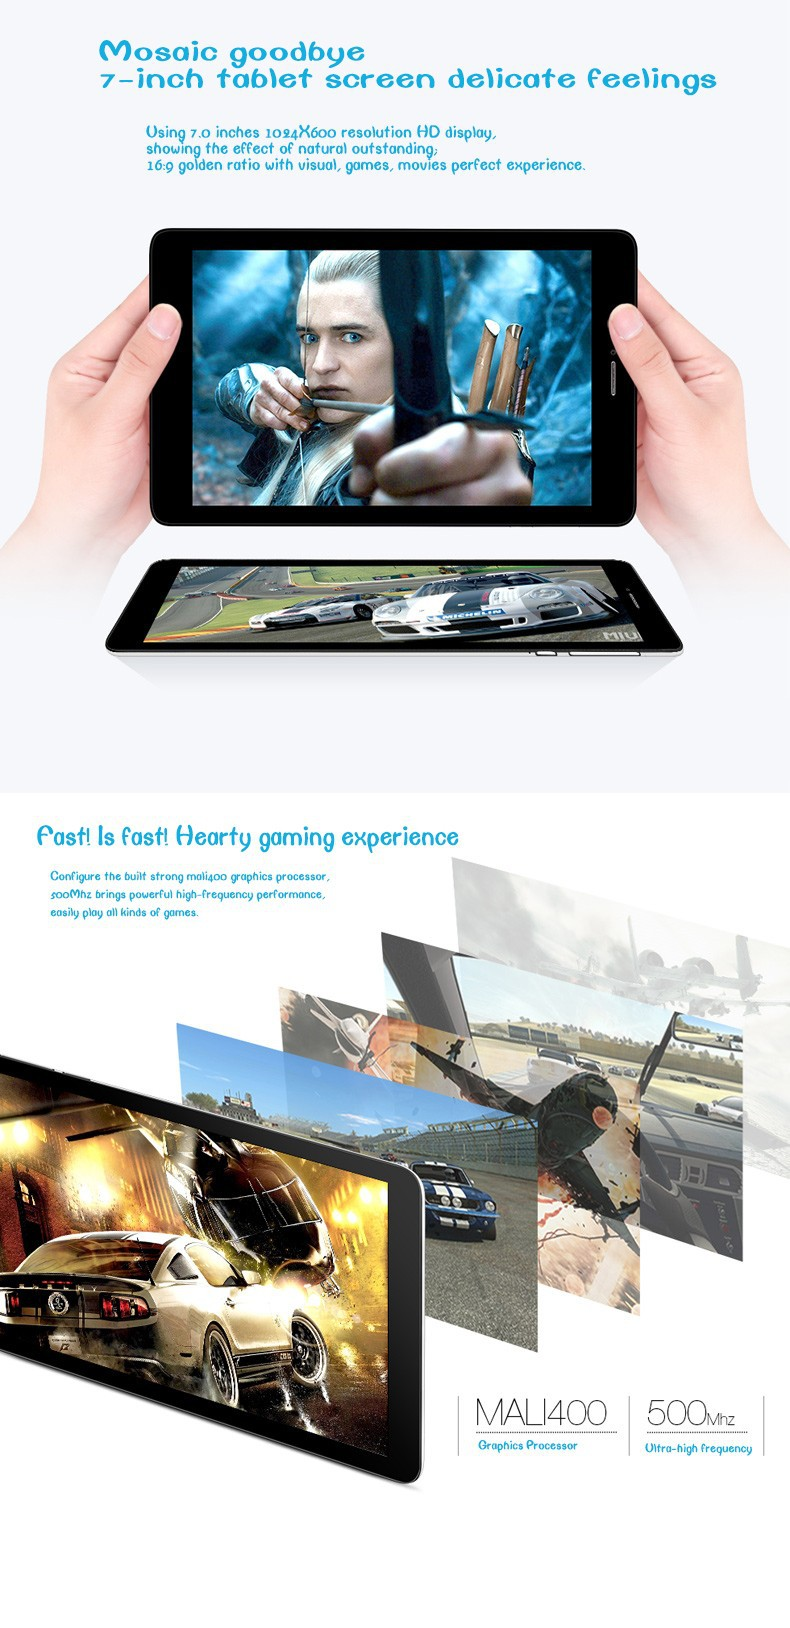 TECLAST G17s 3G Tablet PC MTK8382 Quad-core 1.3GHz Android 4.2 512MB/8GB WIFI Bluetooth GPS Dual Cameras OTG